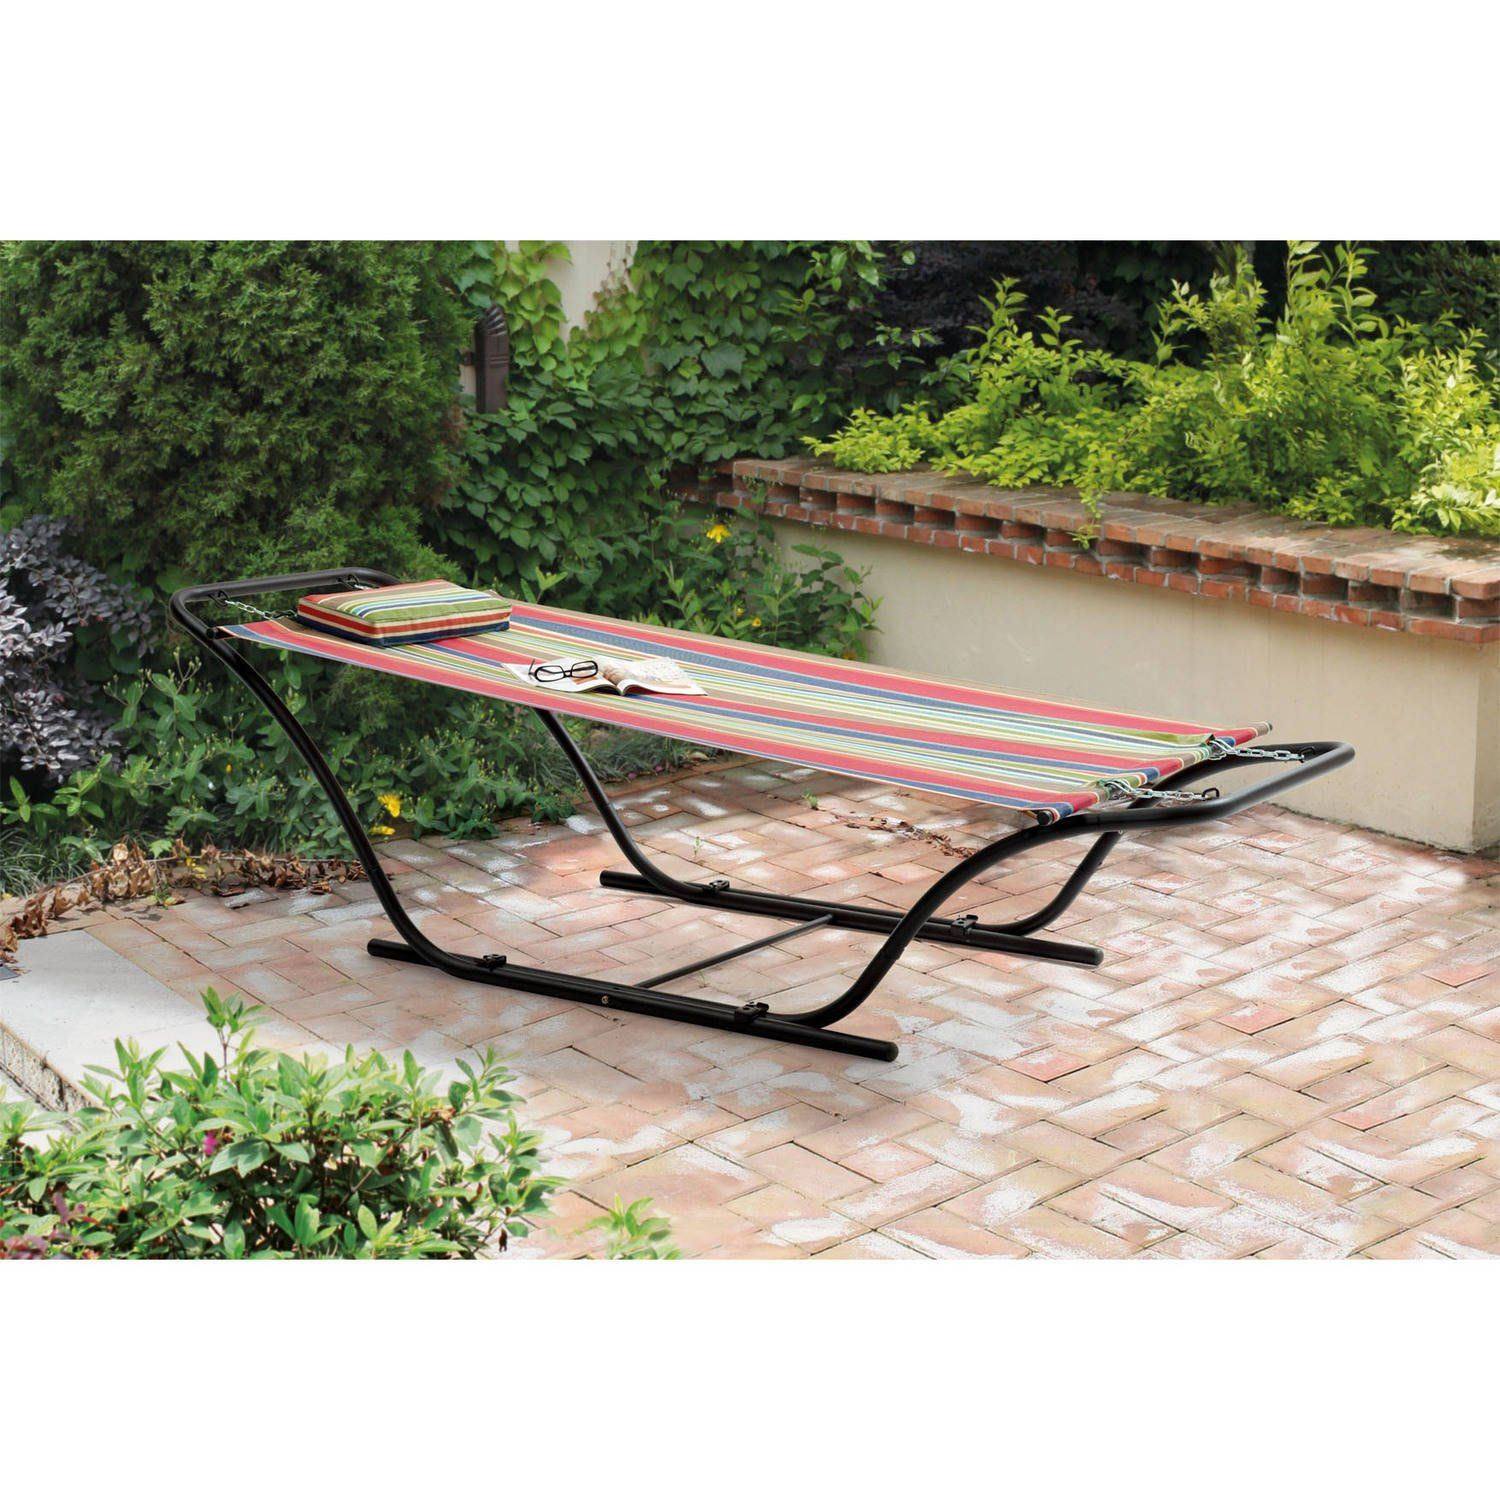 Red outdoor folding hanging sling hammock with stand powder coated